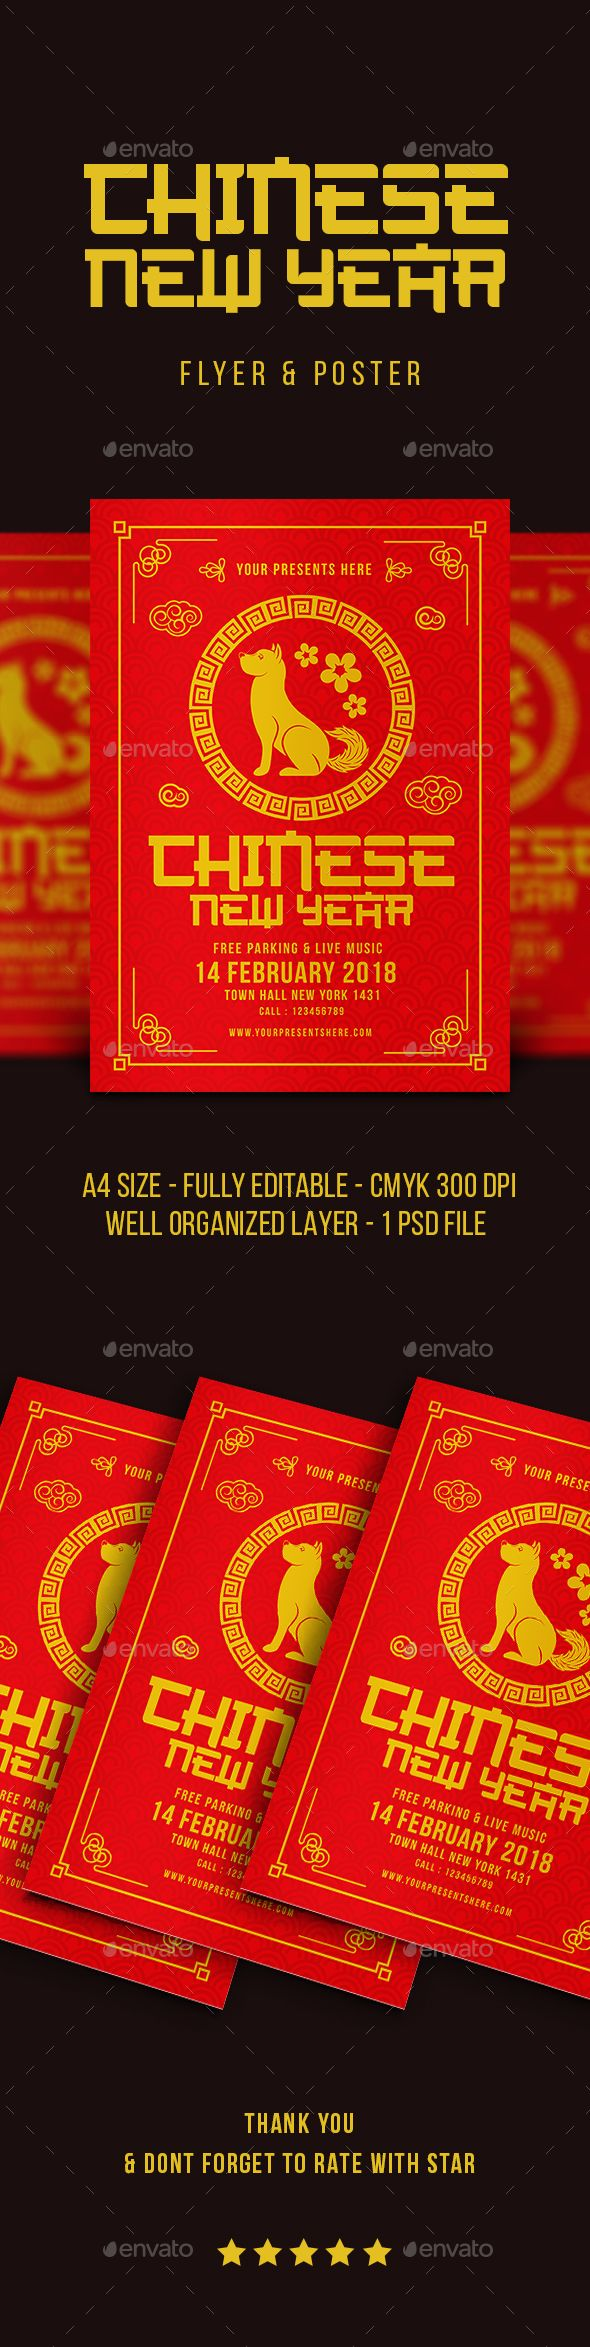 Chinese #New Year - #Events #Flyers